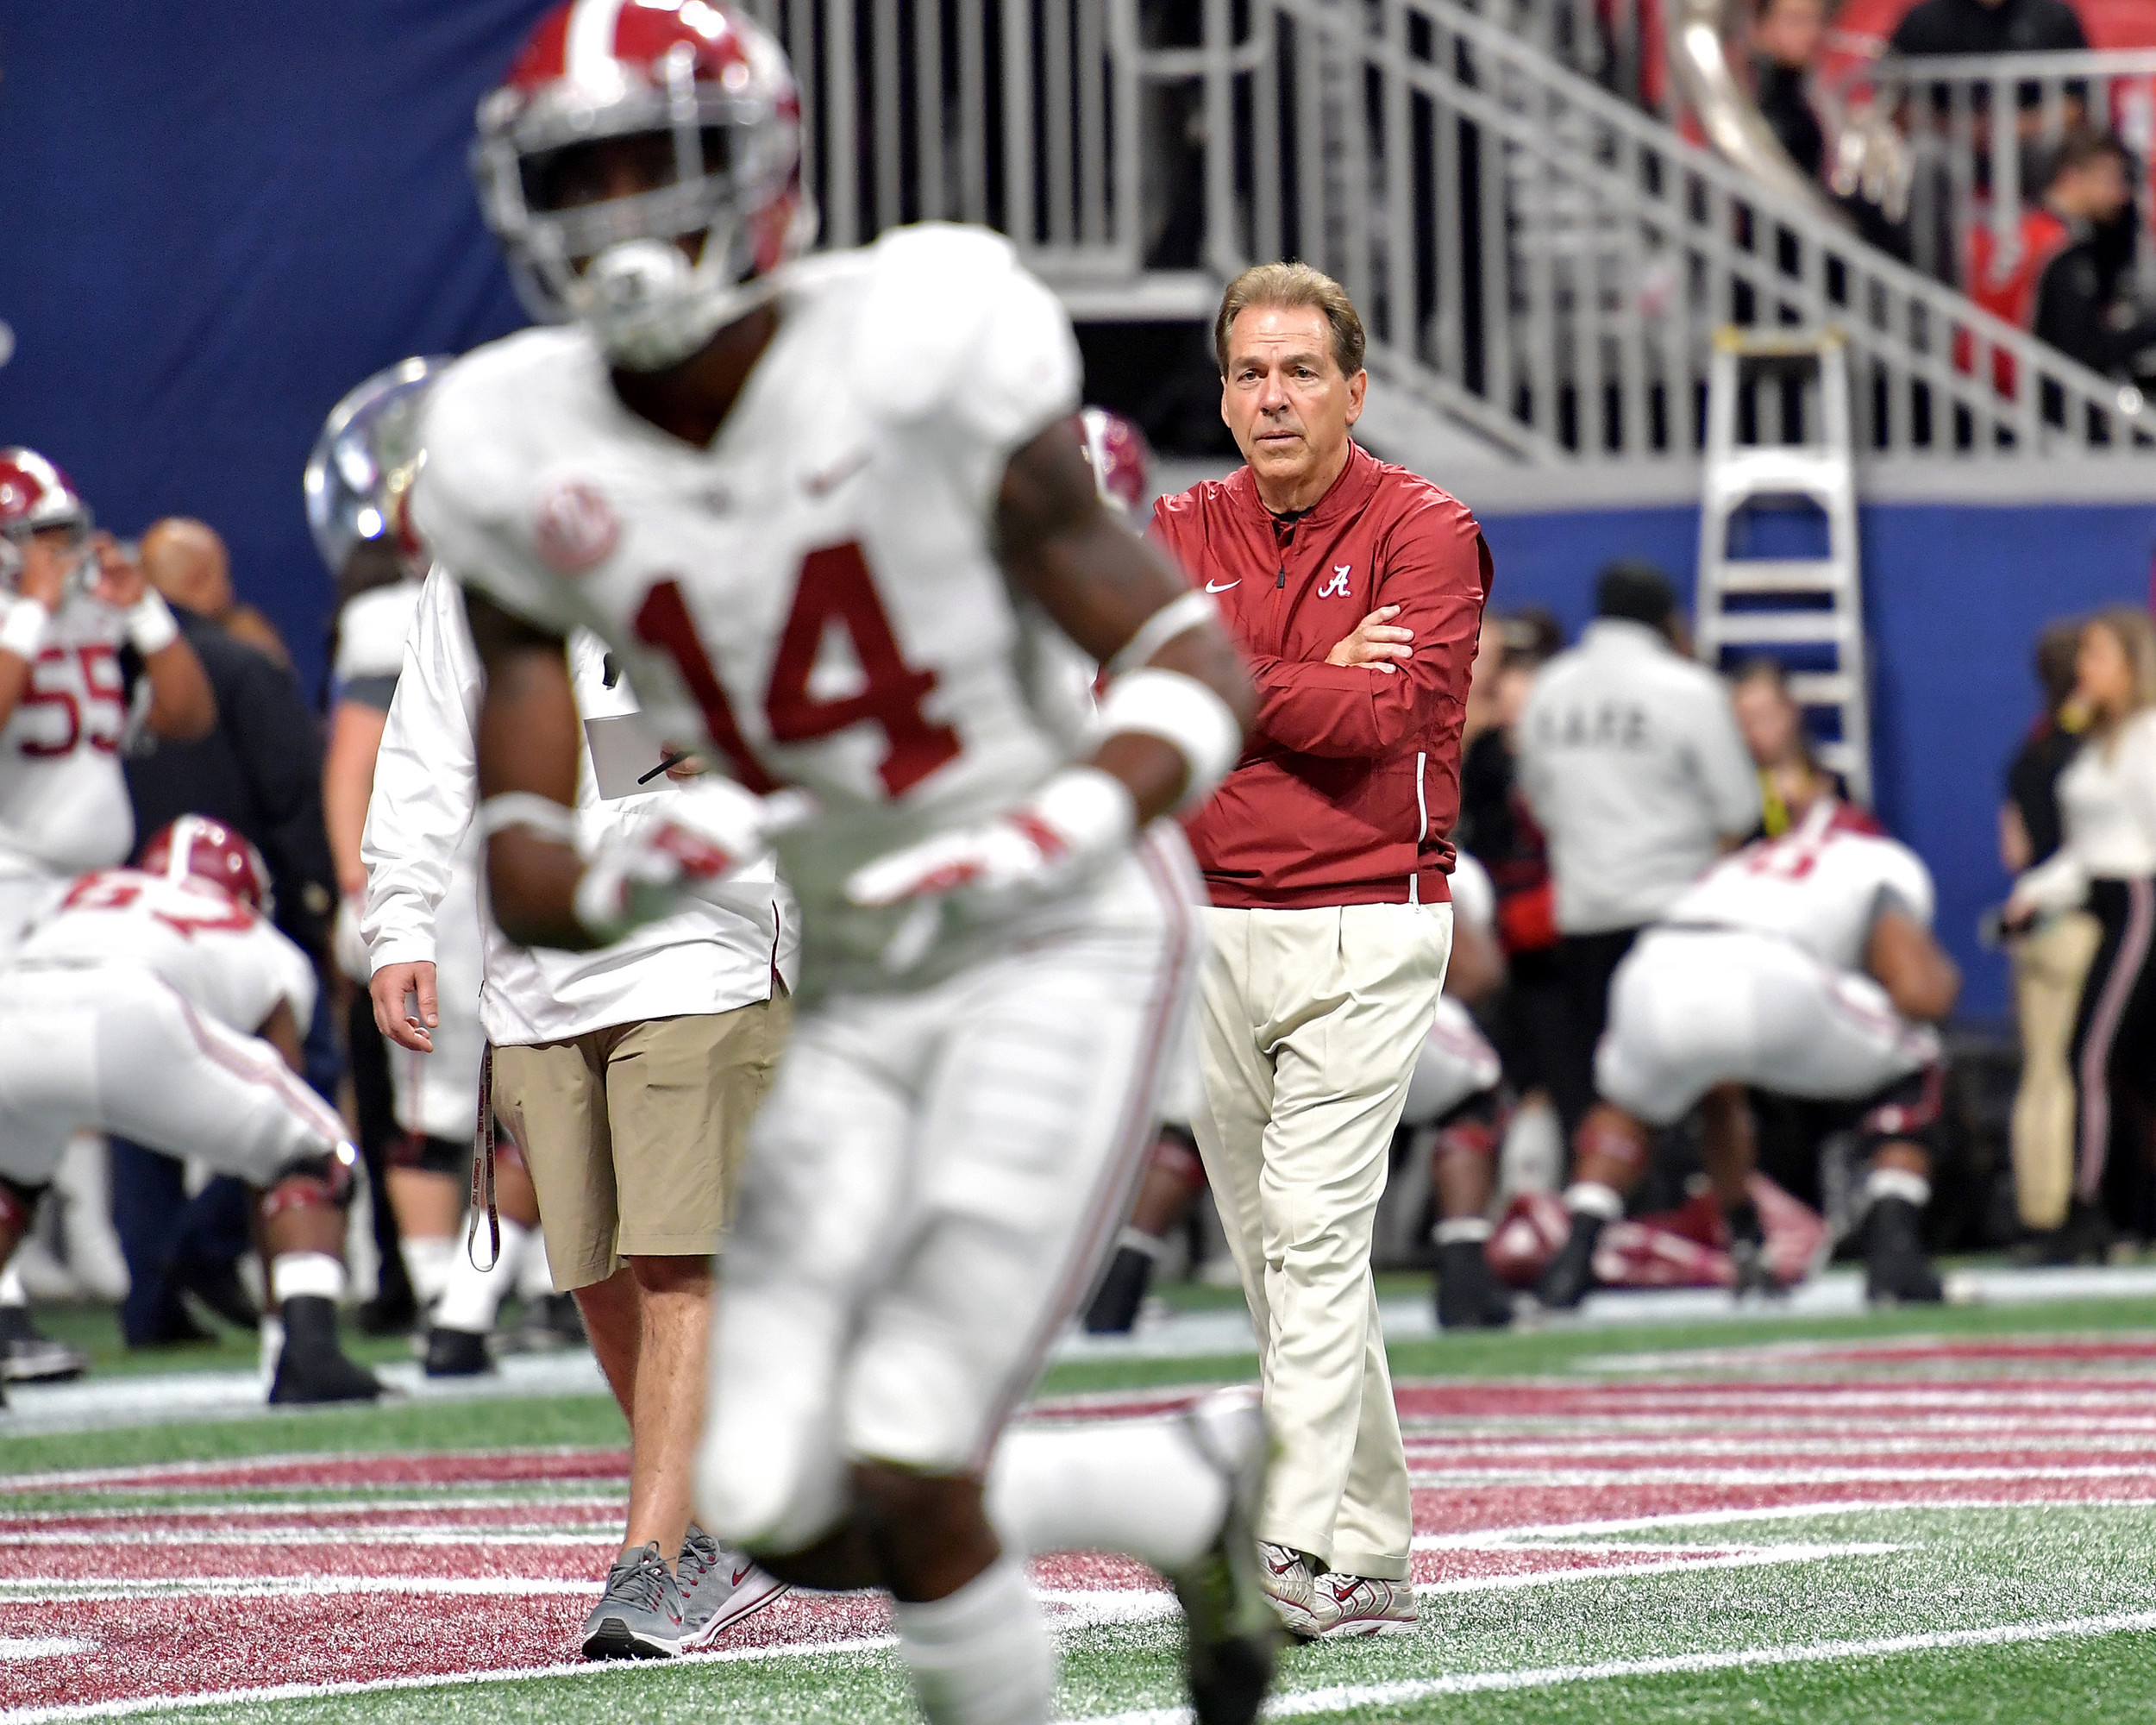 Alabama coach Nick Saban looks over his players prior to the 2018 SEC Championship football game, featuring the Georgia Bulldogs and the Alabama Crimson Tide, at Mercedes-Benz Stadium in Atlanta, Ga., on Dec. 1, 2018. Alabama wins 35-28. (Photo by Lee Walls)